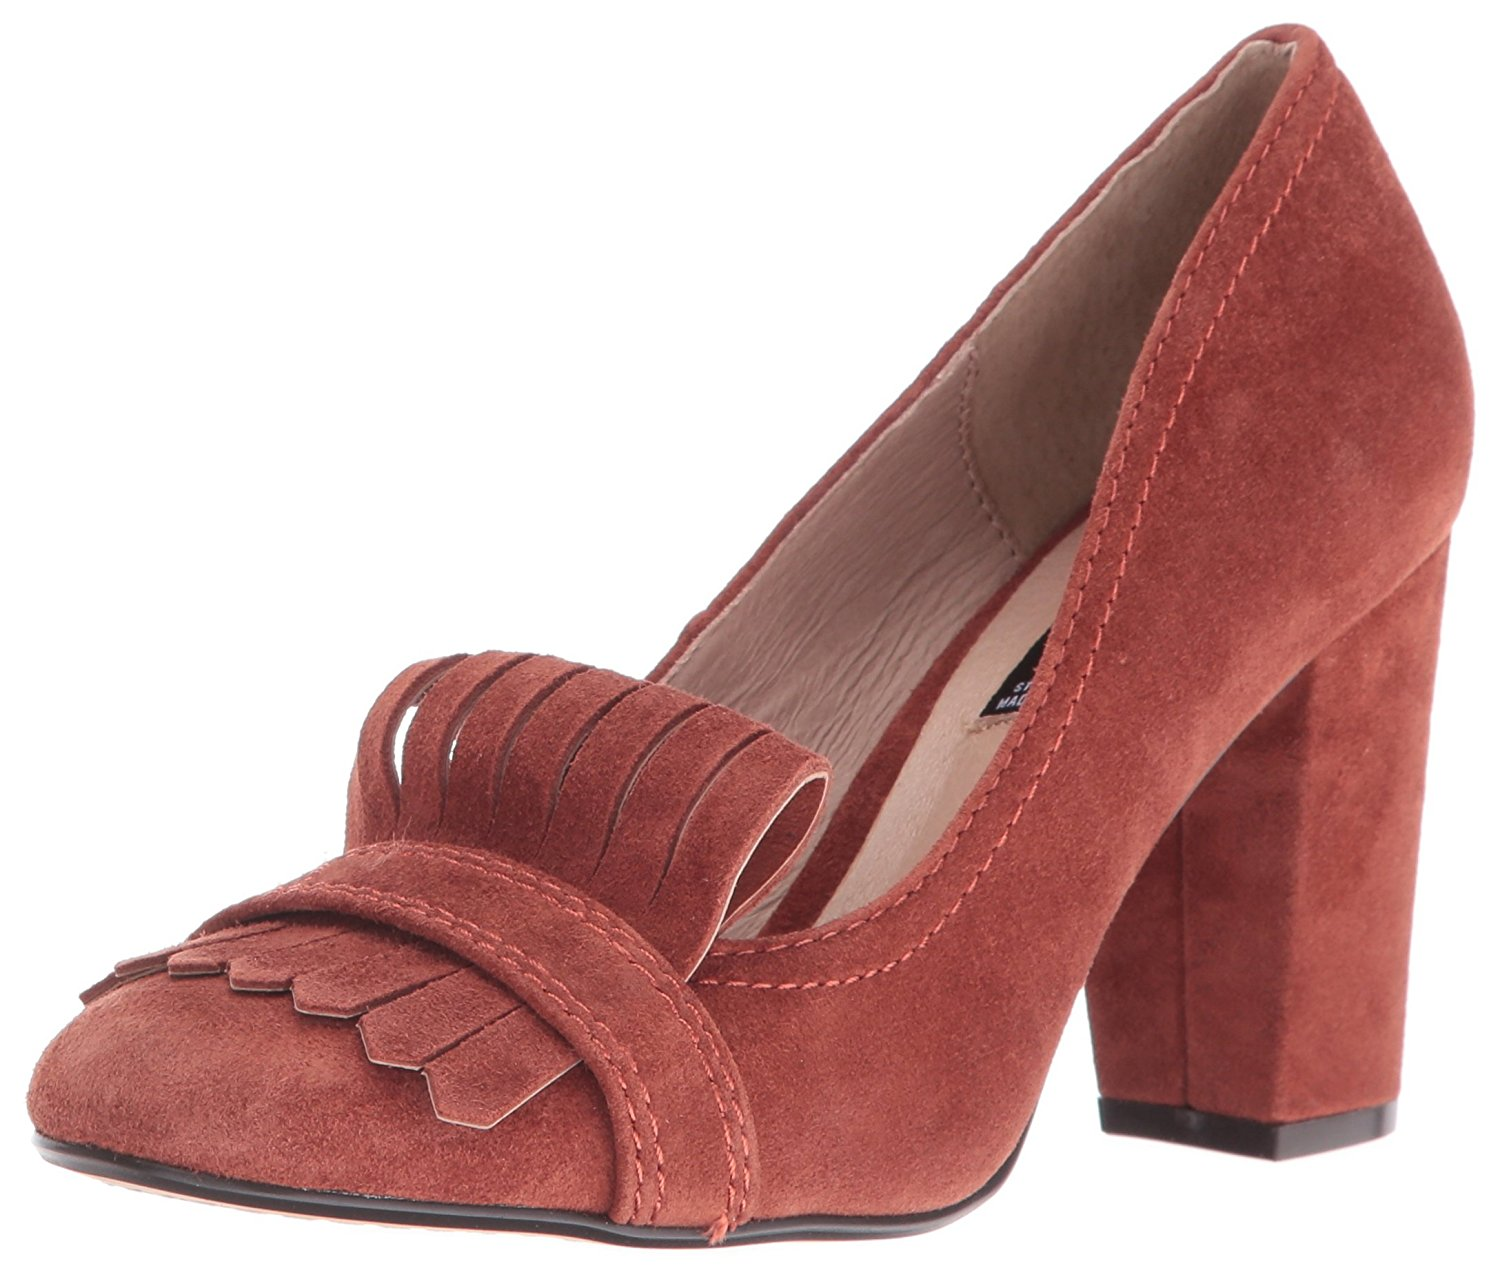 82f8b4c9161 STEVEN by Steve Madden Womens Jade Leather Round Toe Classic Pumps ...